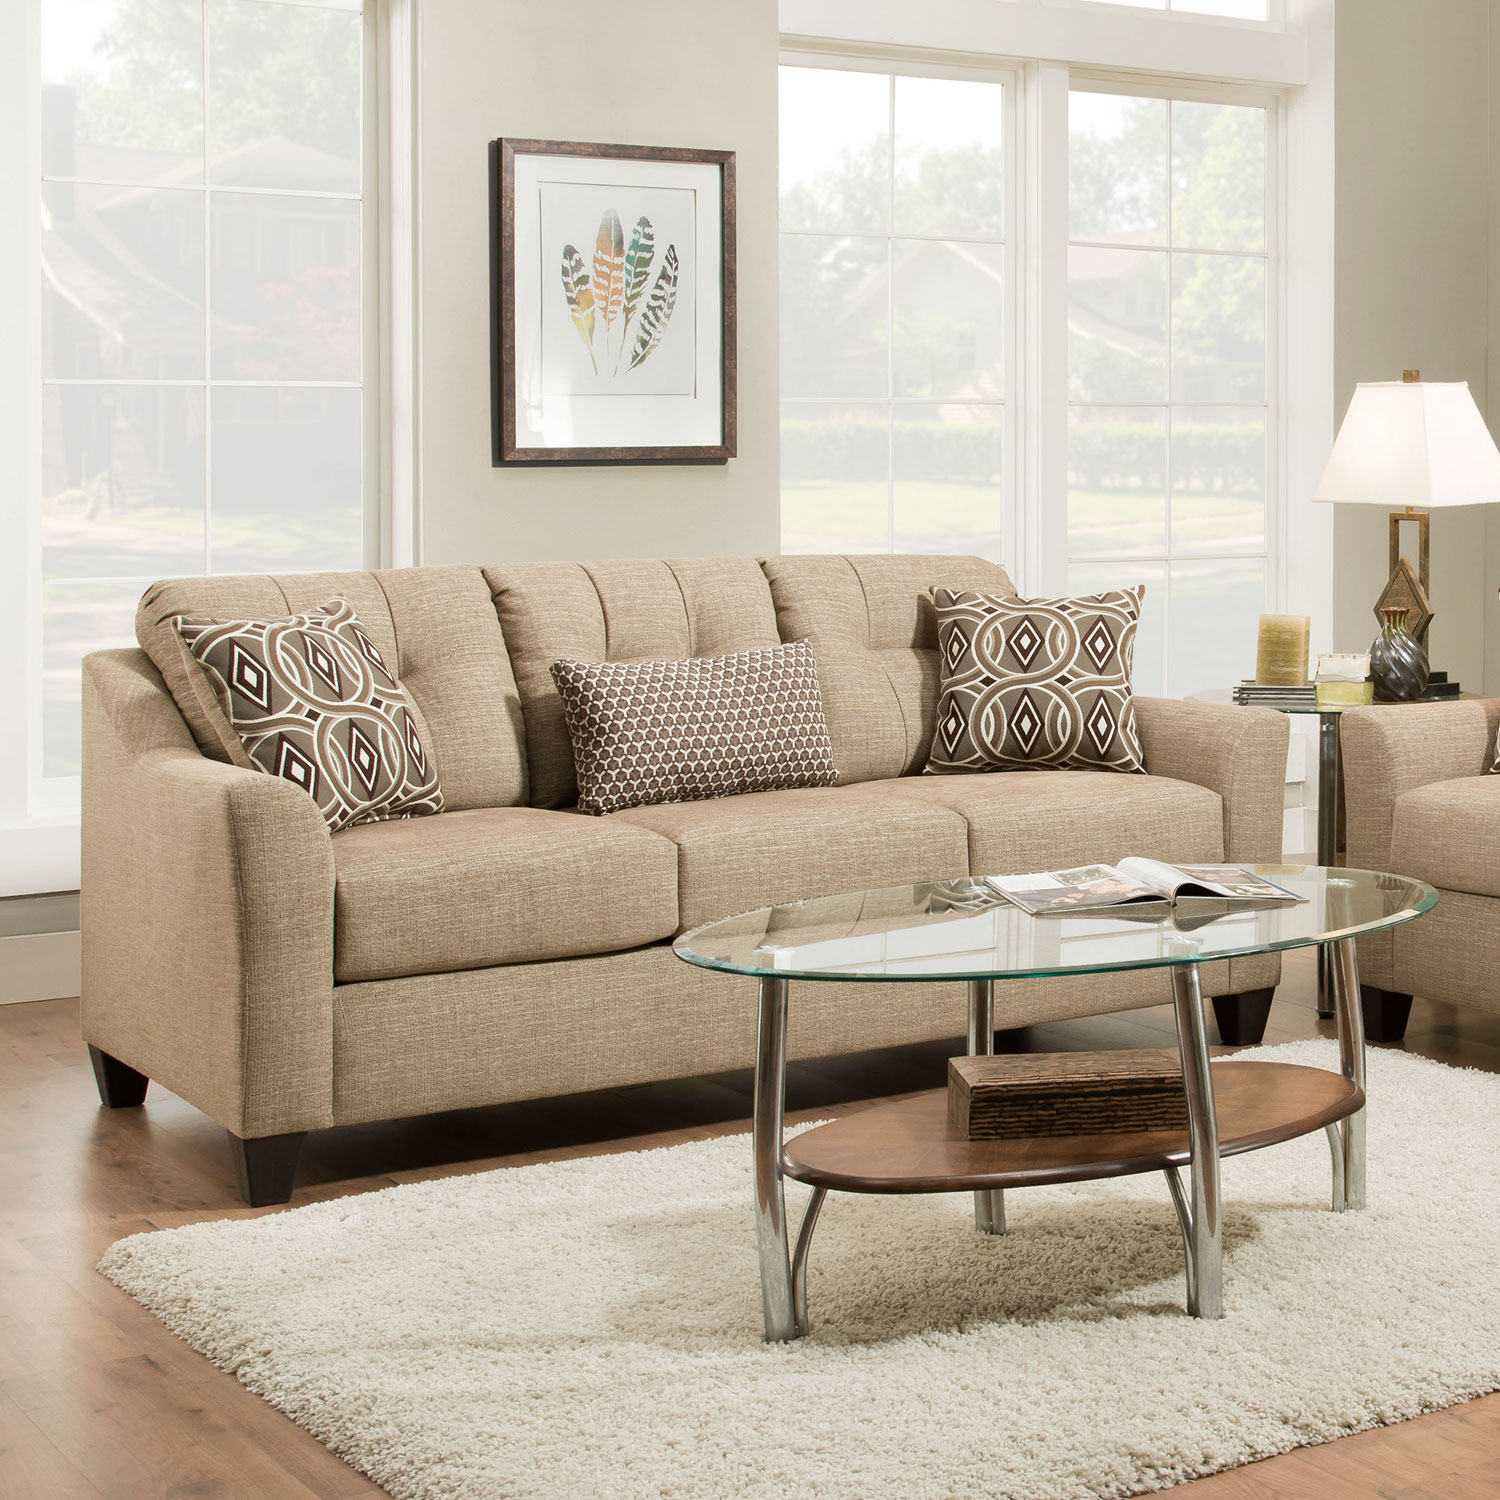 omaha sofa for sale by owner black leather studded simmons 4315s national husk stationary hope home